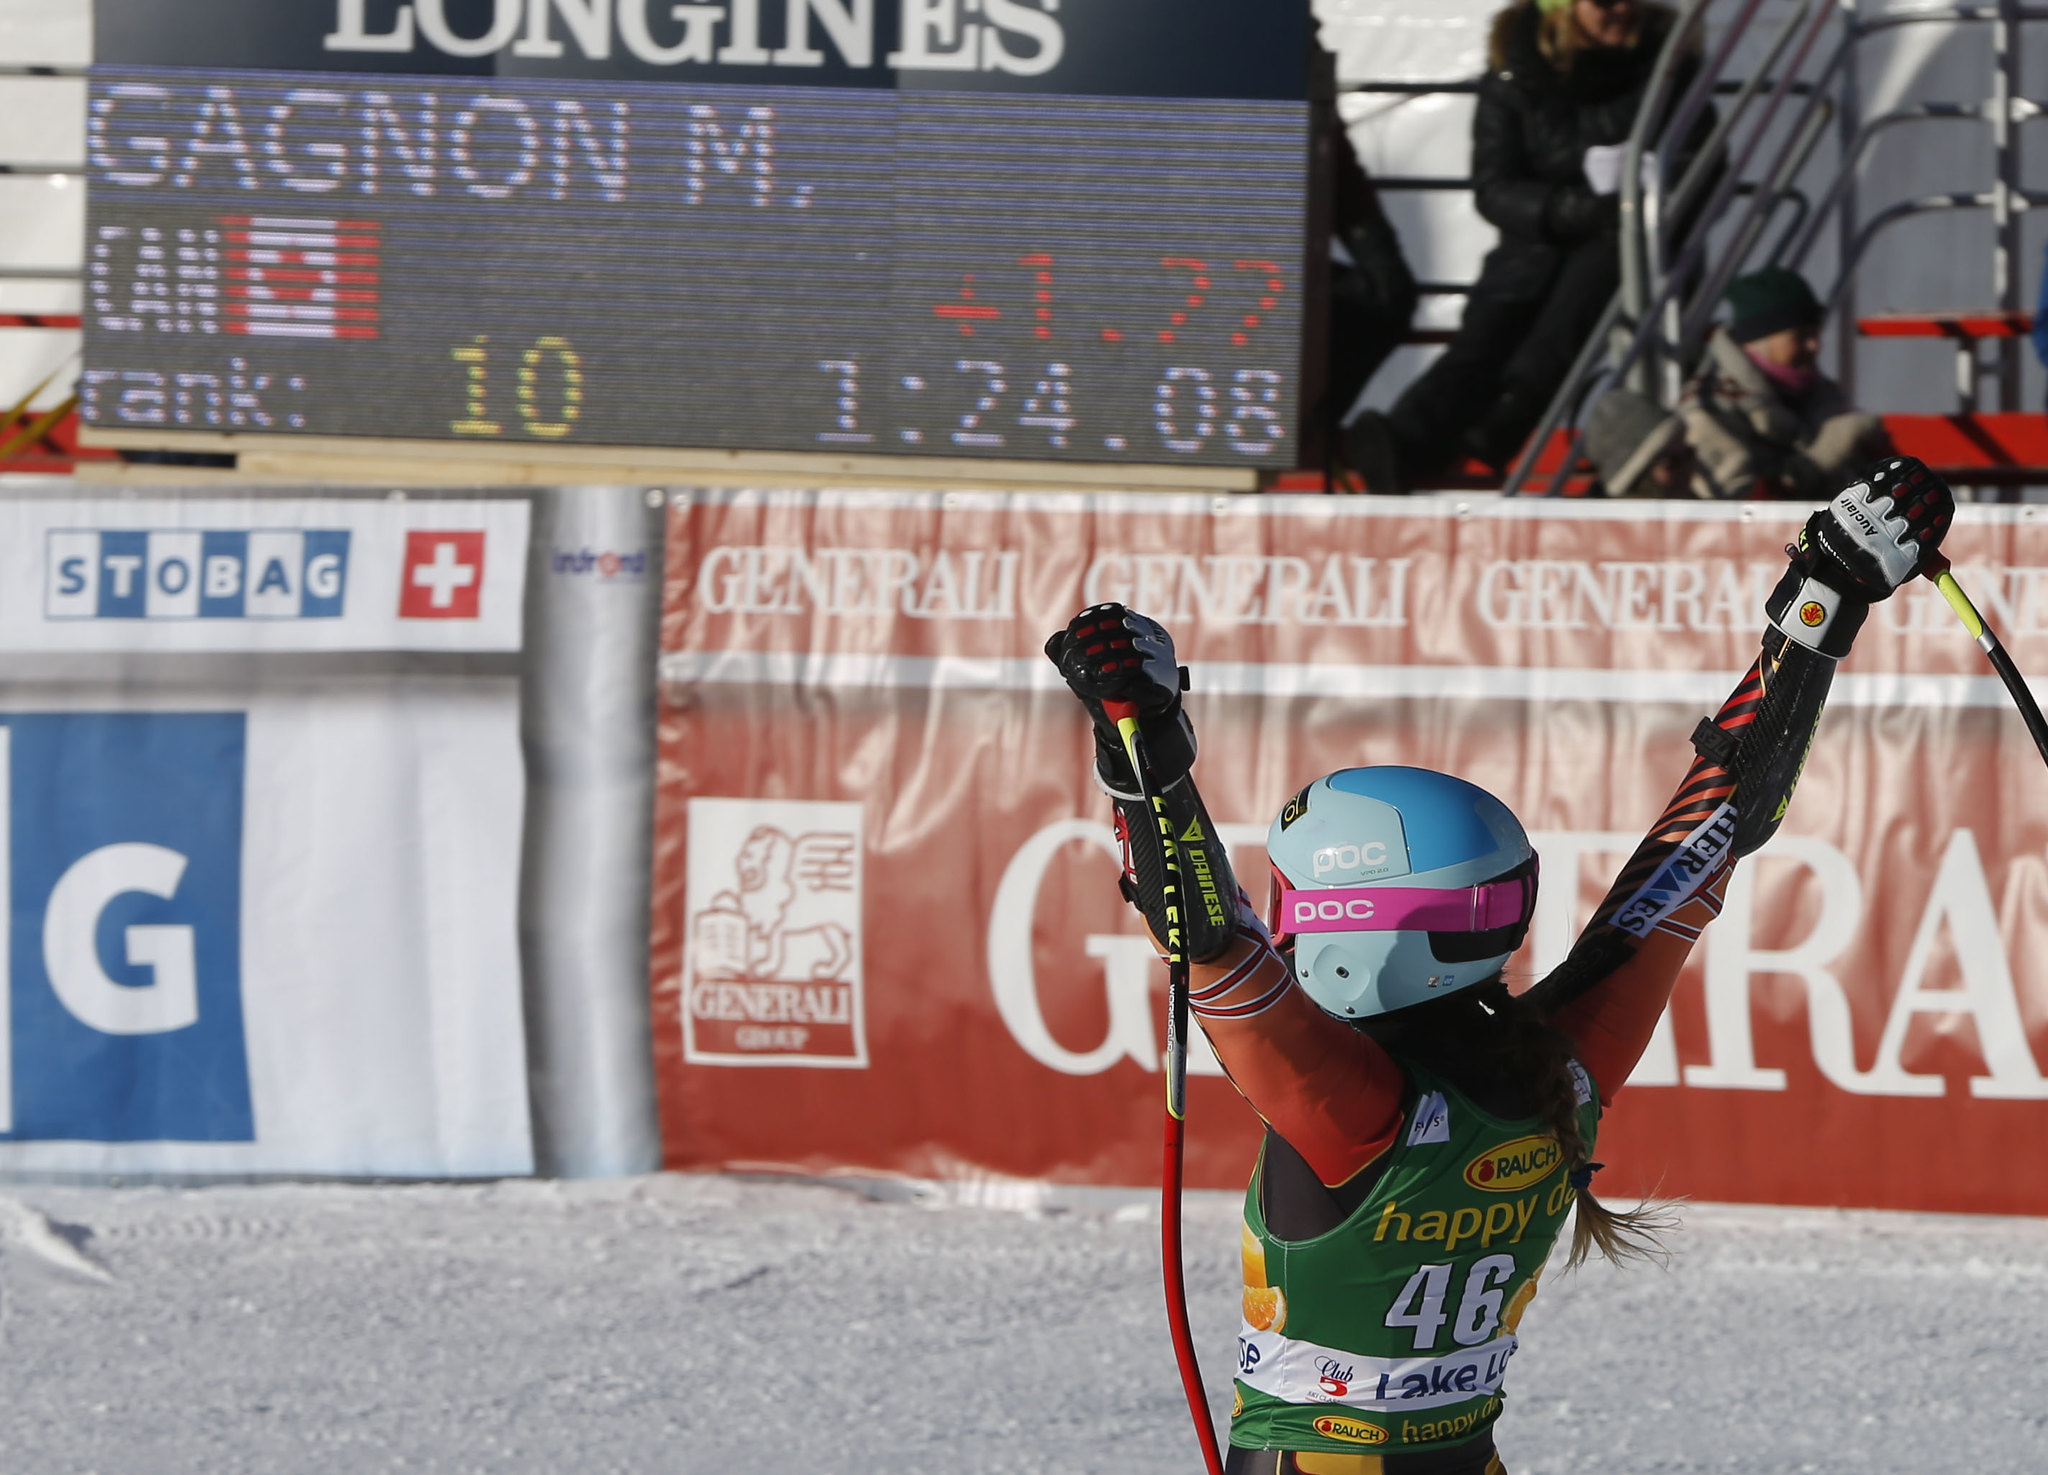 Gagnon celebrates a career best 10th place finish in the super-G at the FIS Alpine World Cup in Lake Louise, CAN